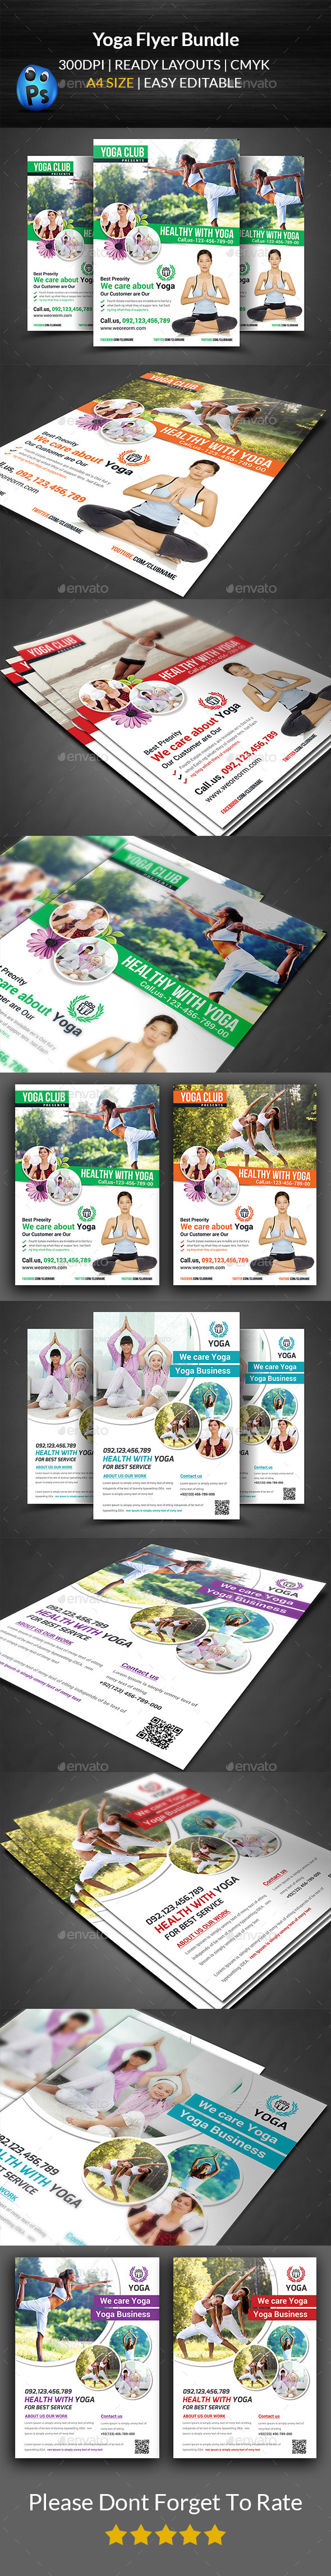 Yoga Flyer Template Bundle  - Flyers Print Templates